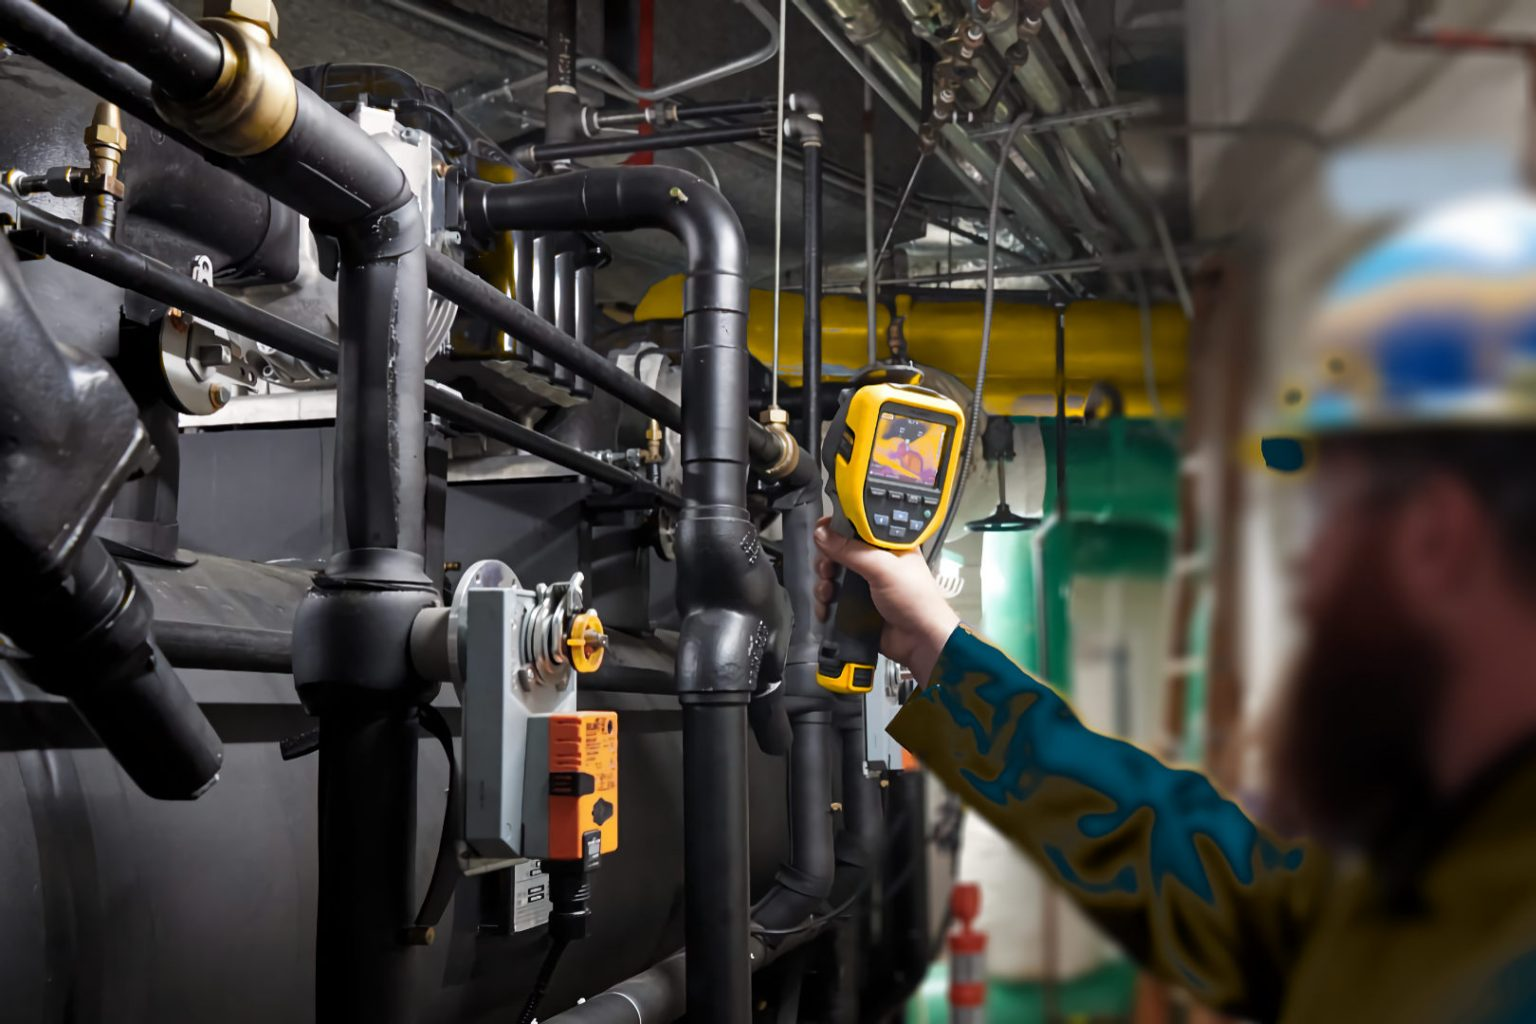 technician thermal scanning HVAC plant and chiller equipment